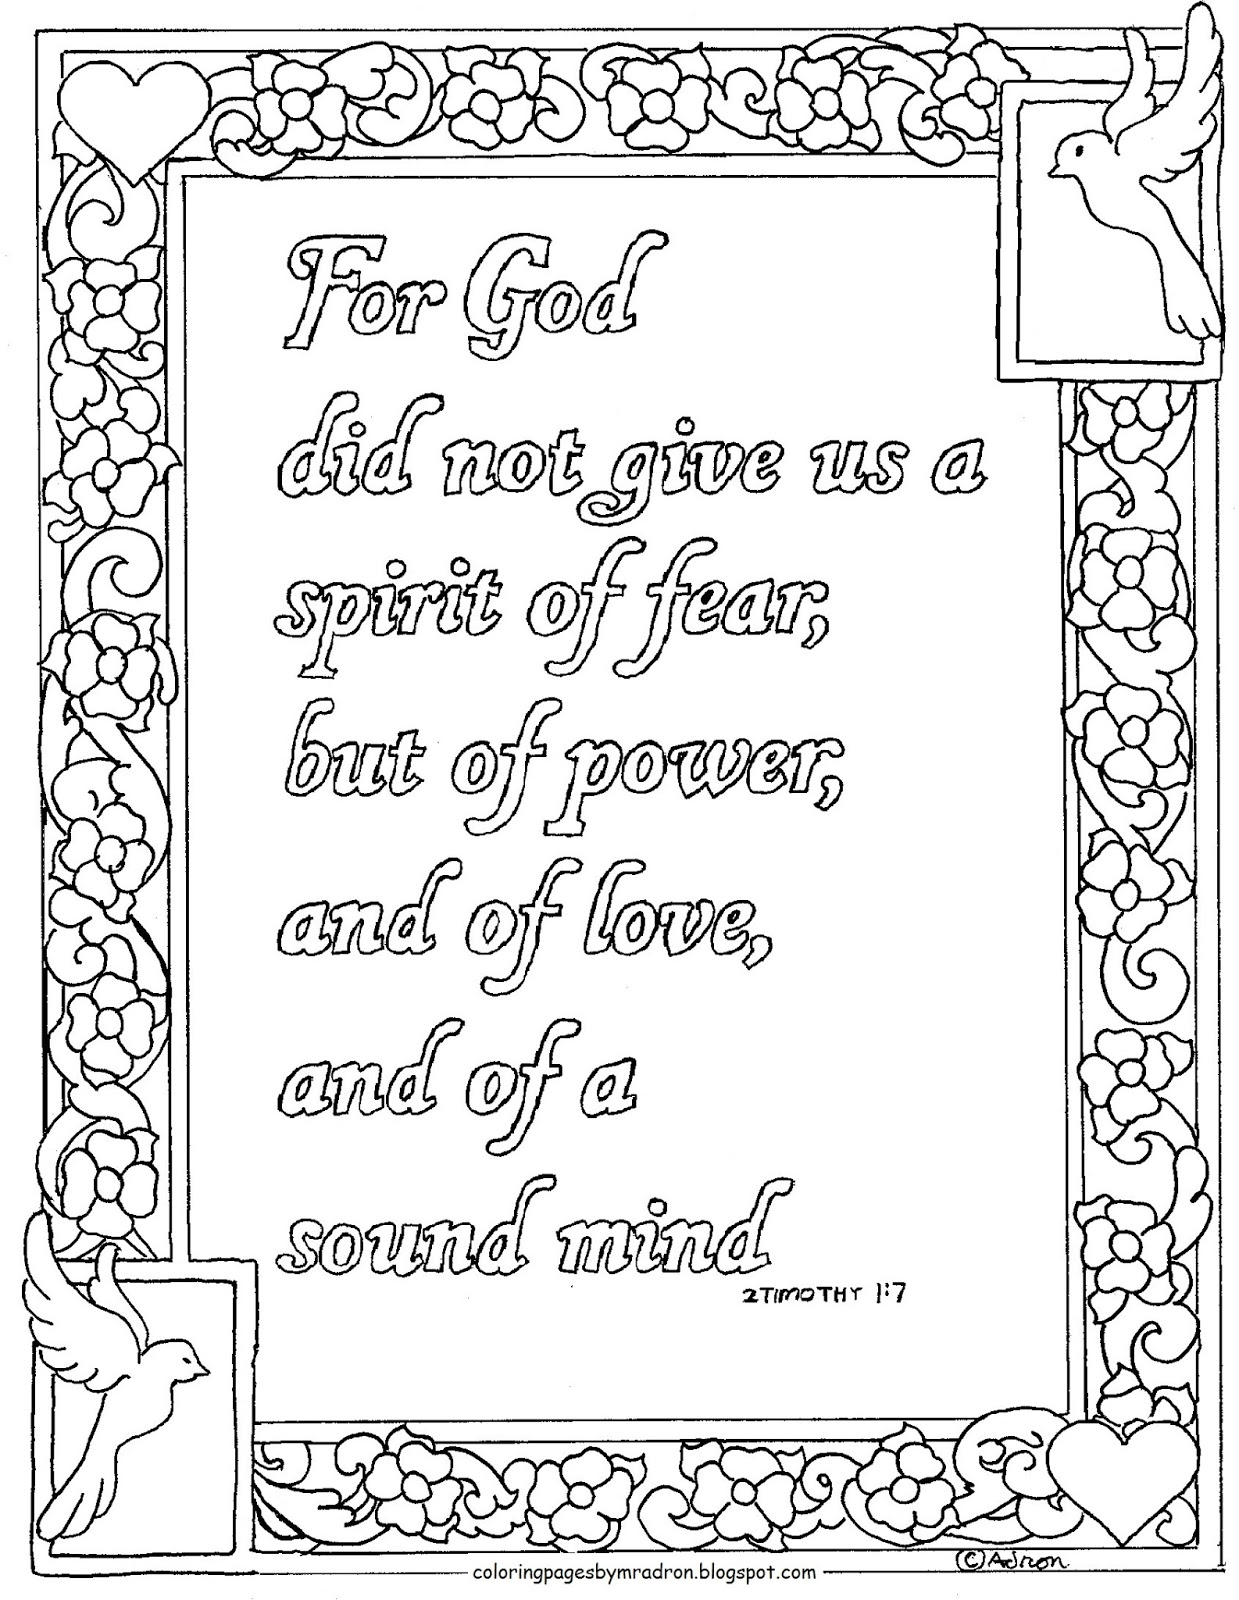 Coloring Pages For Kids By Mr Adron 2 Timothy 1 7 Coloring Page God Did Not Give Us A Spirit